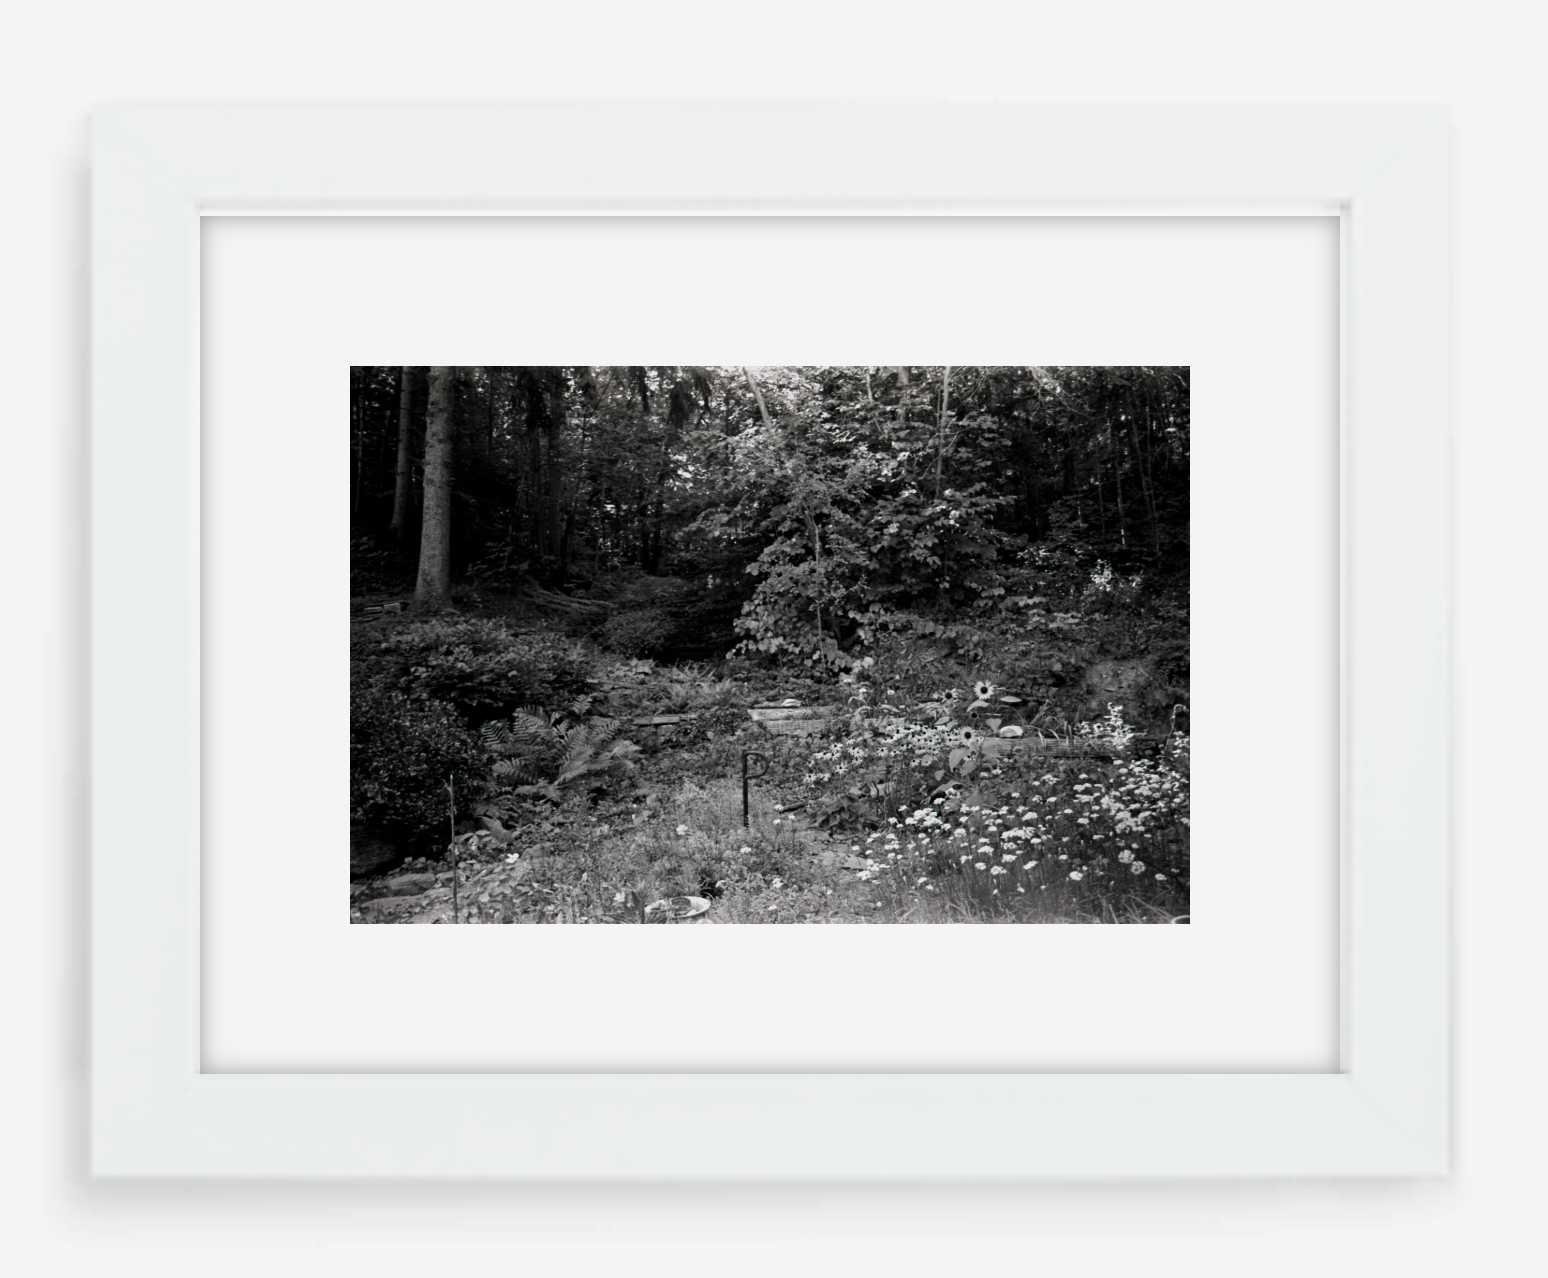 the garden - 8x12 / Gallery White / With Mat - 12x18 / Gallery White / With Mat